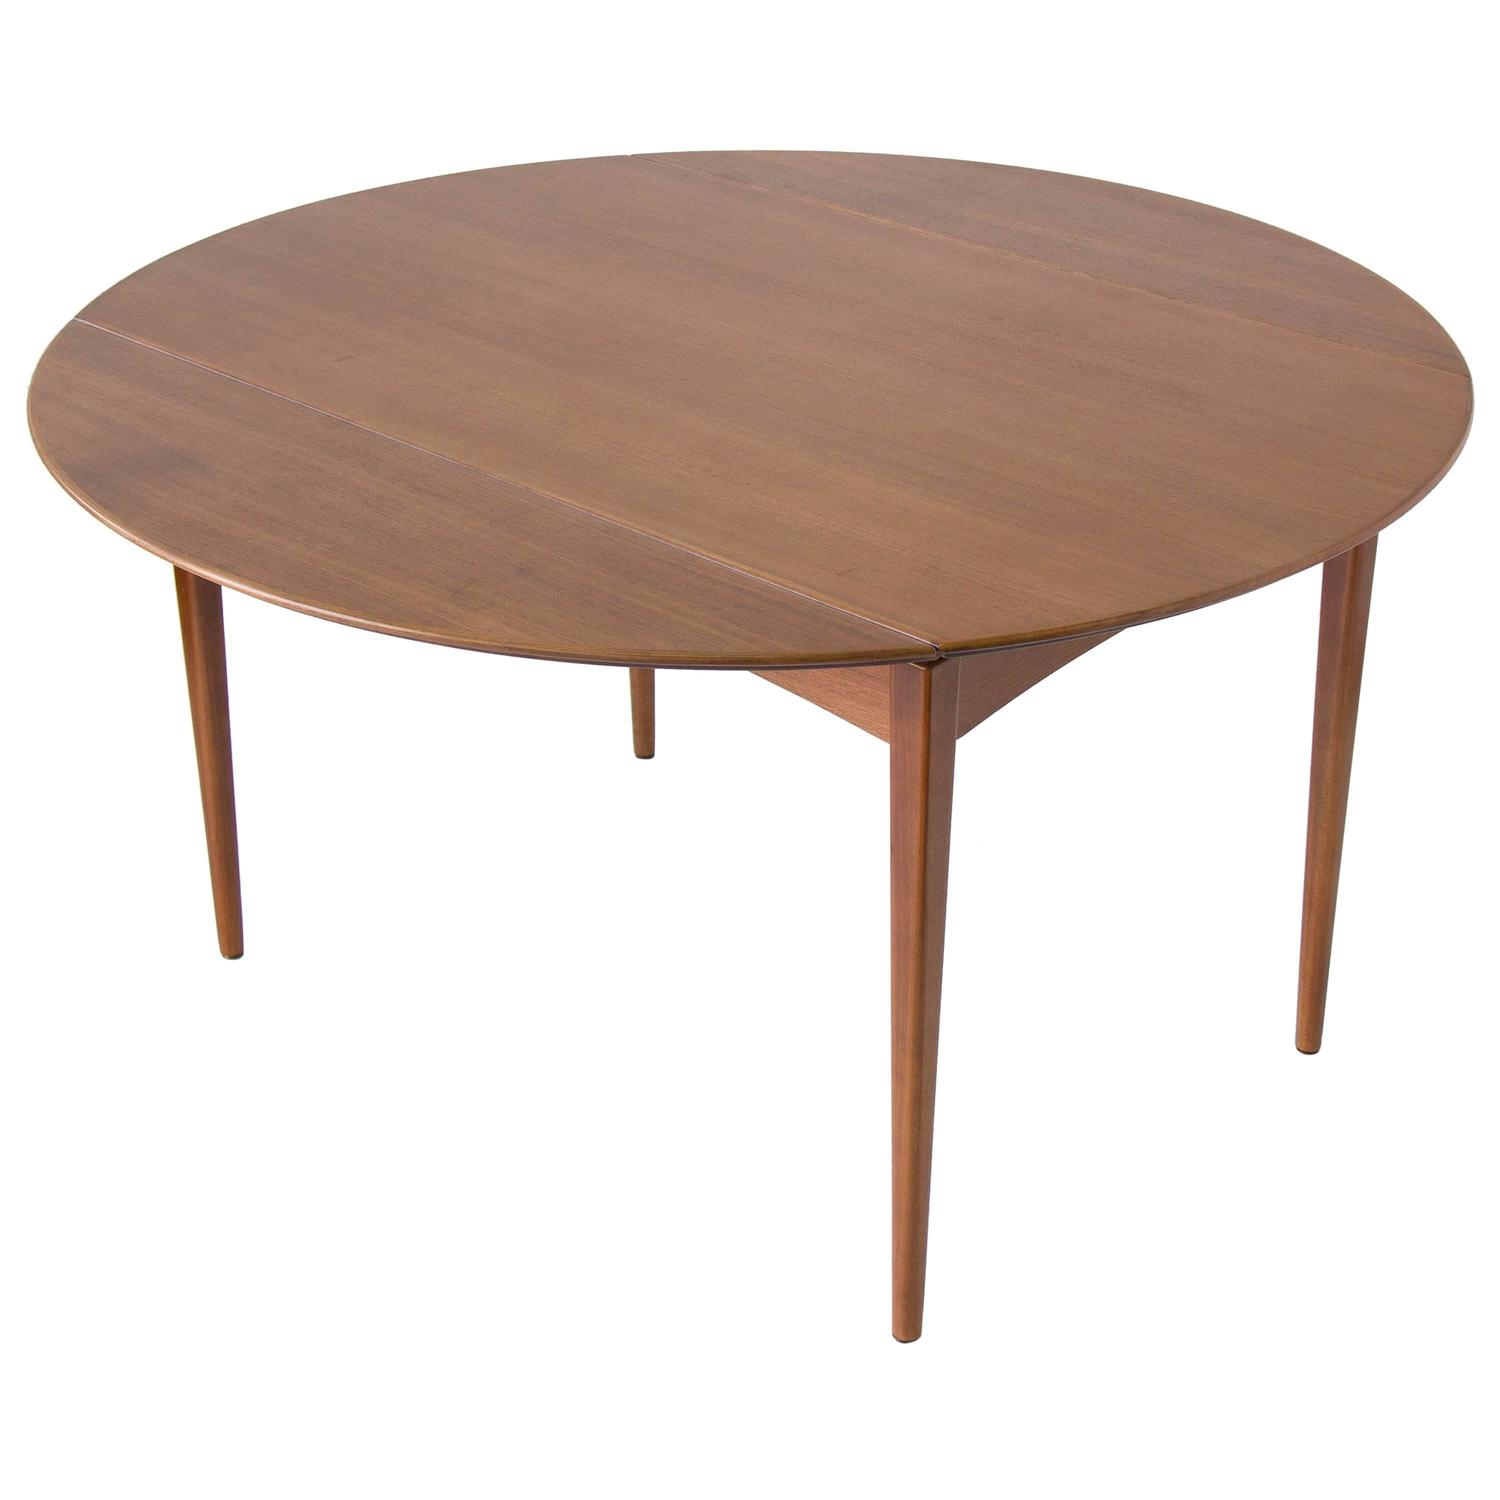 Drop Leaf Dining Room Tables Harden Furniture Dining  : 5604333z from artofarchitect.com size 1500 x 1500 jpeg 72kB